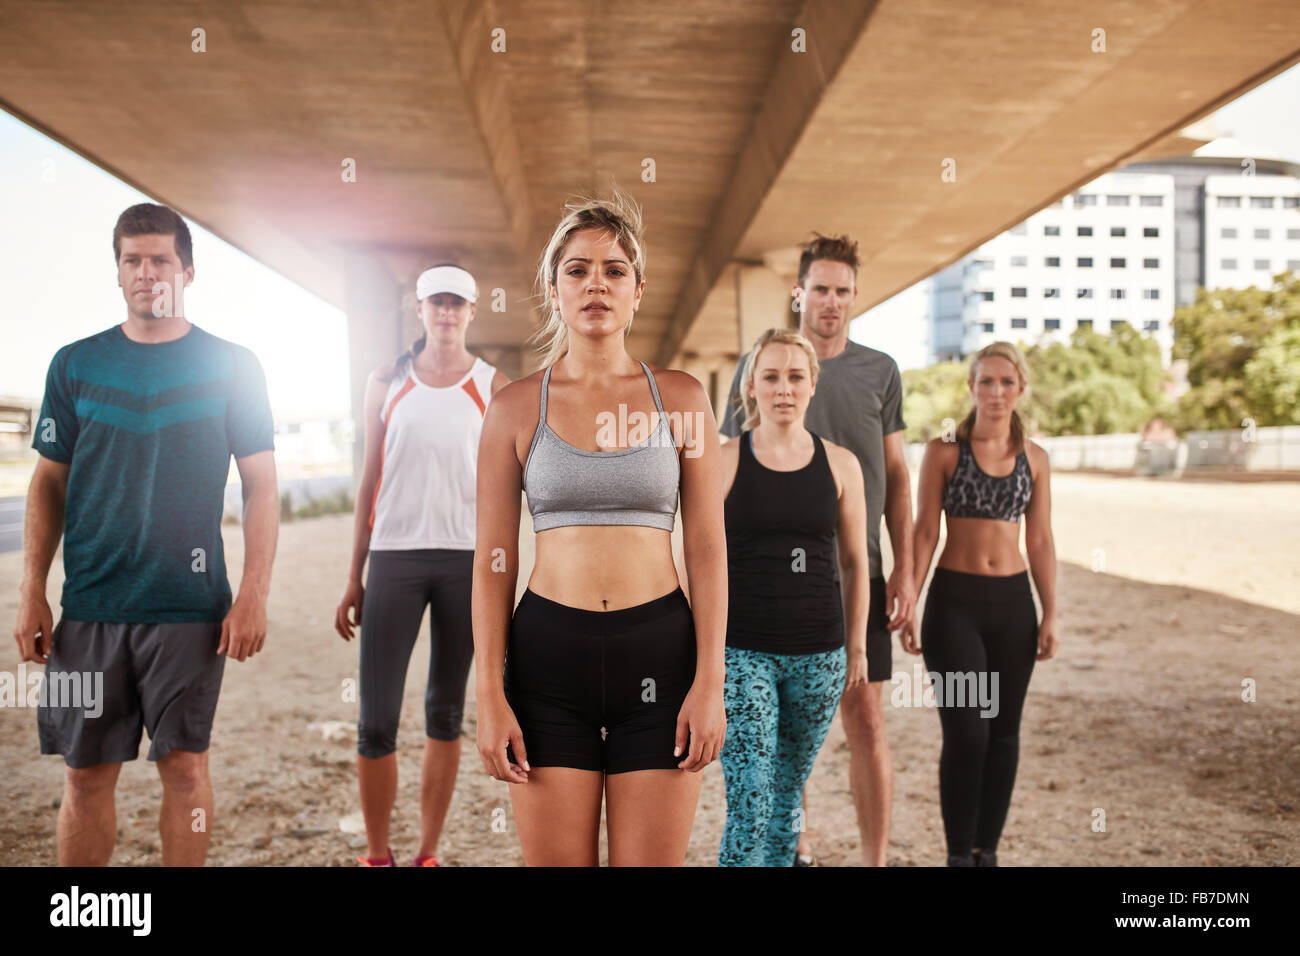 Portrait of running club group standing and looking at camera. Fit young people taking a break after running training. - Stock Image